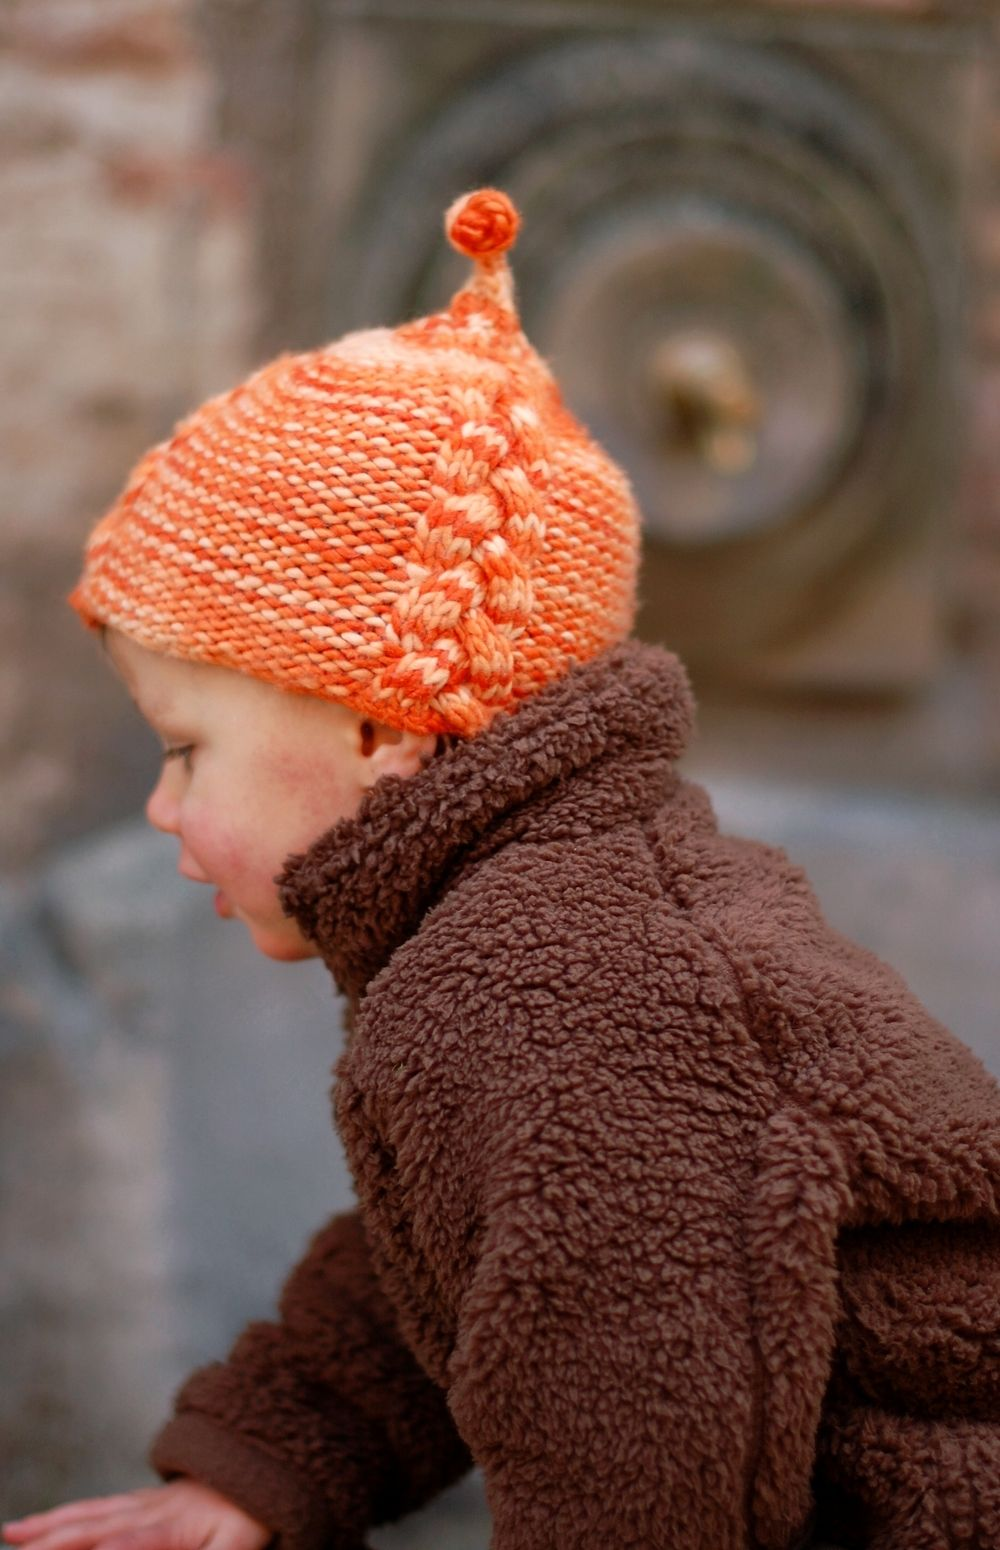 Lollie cable pixie Hat knitting pattern | Seasons | Pinterest ...